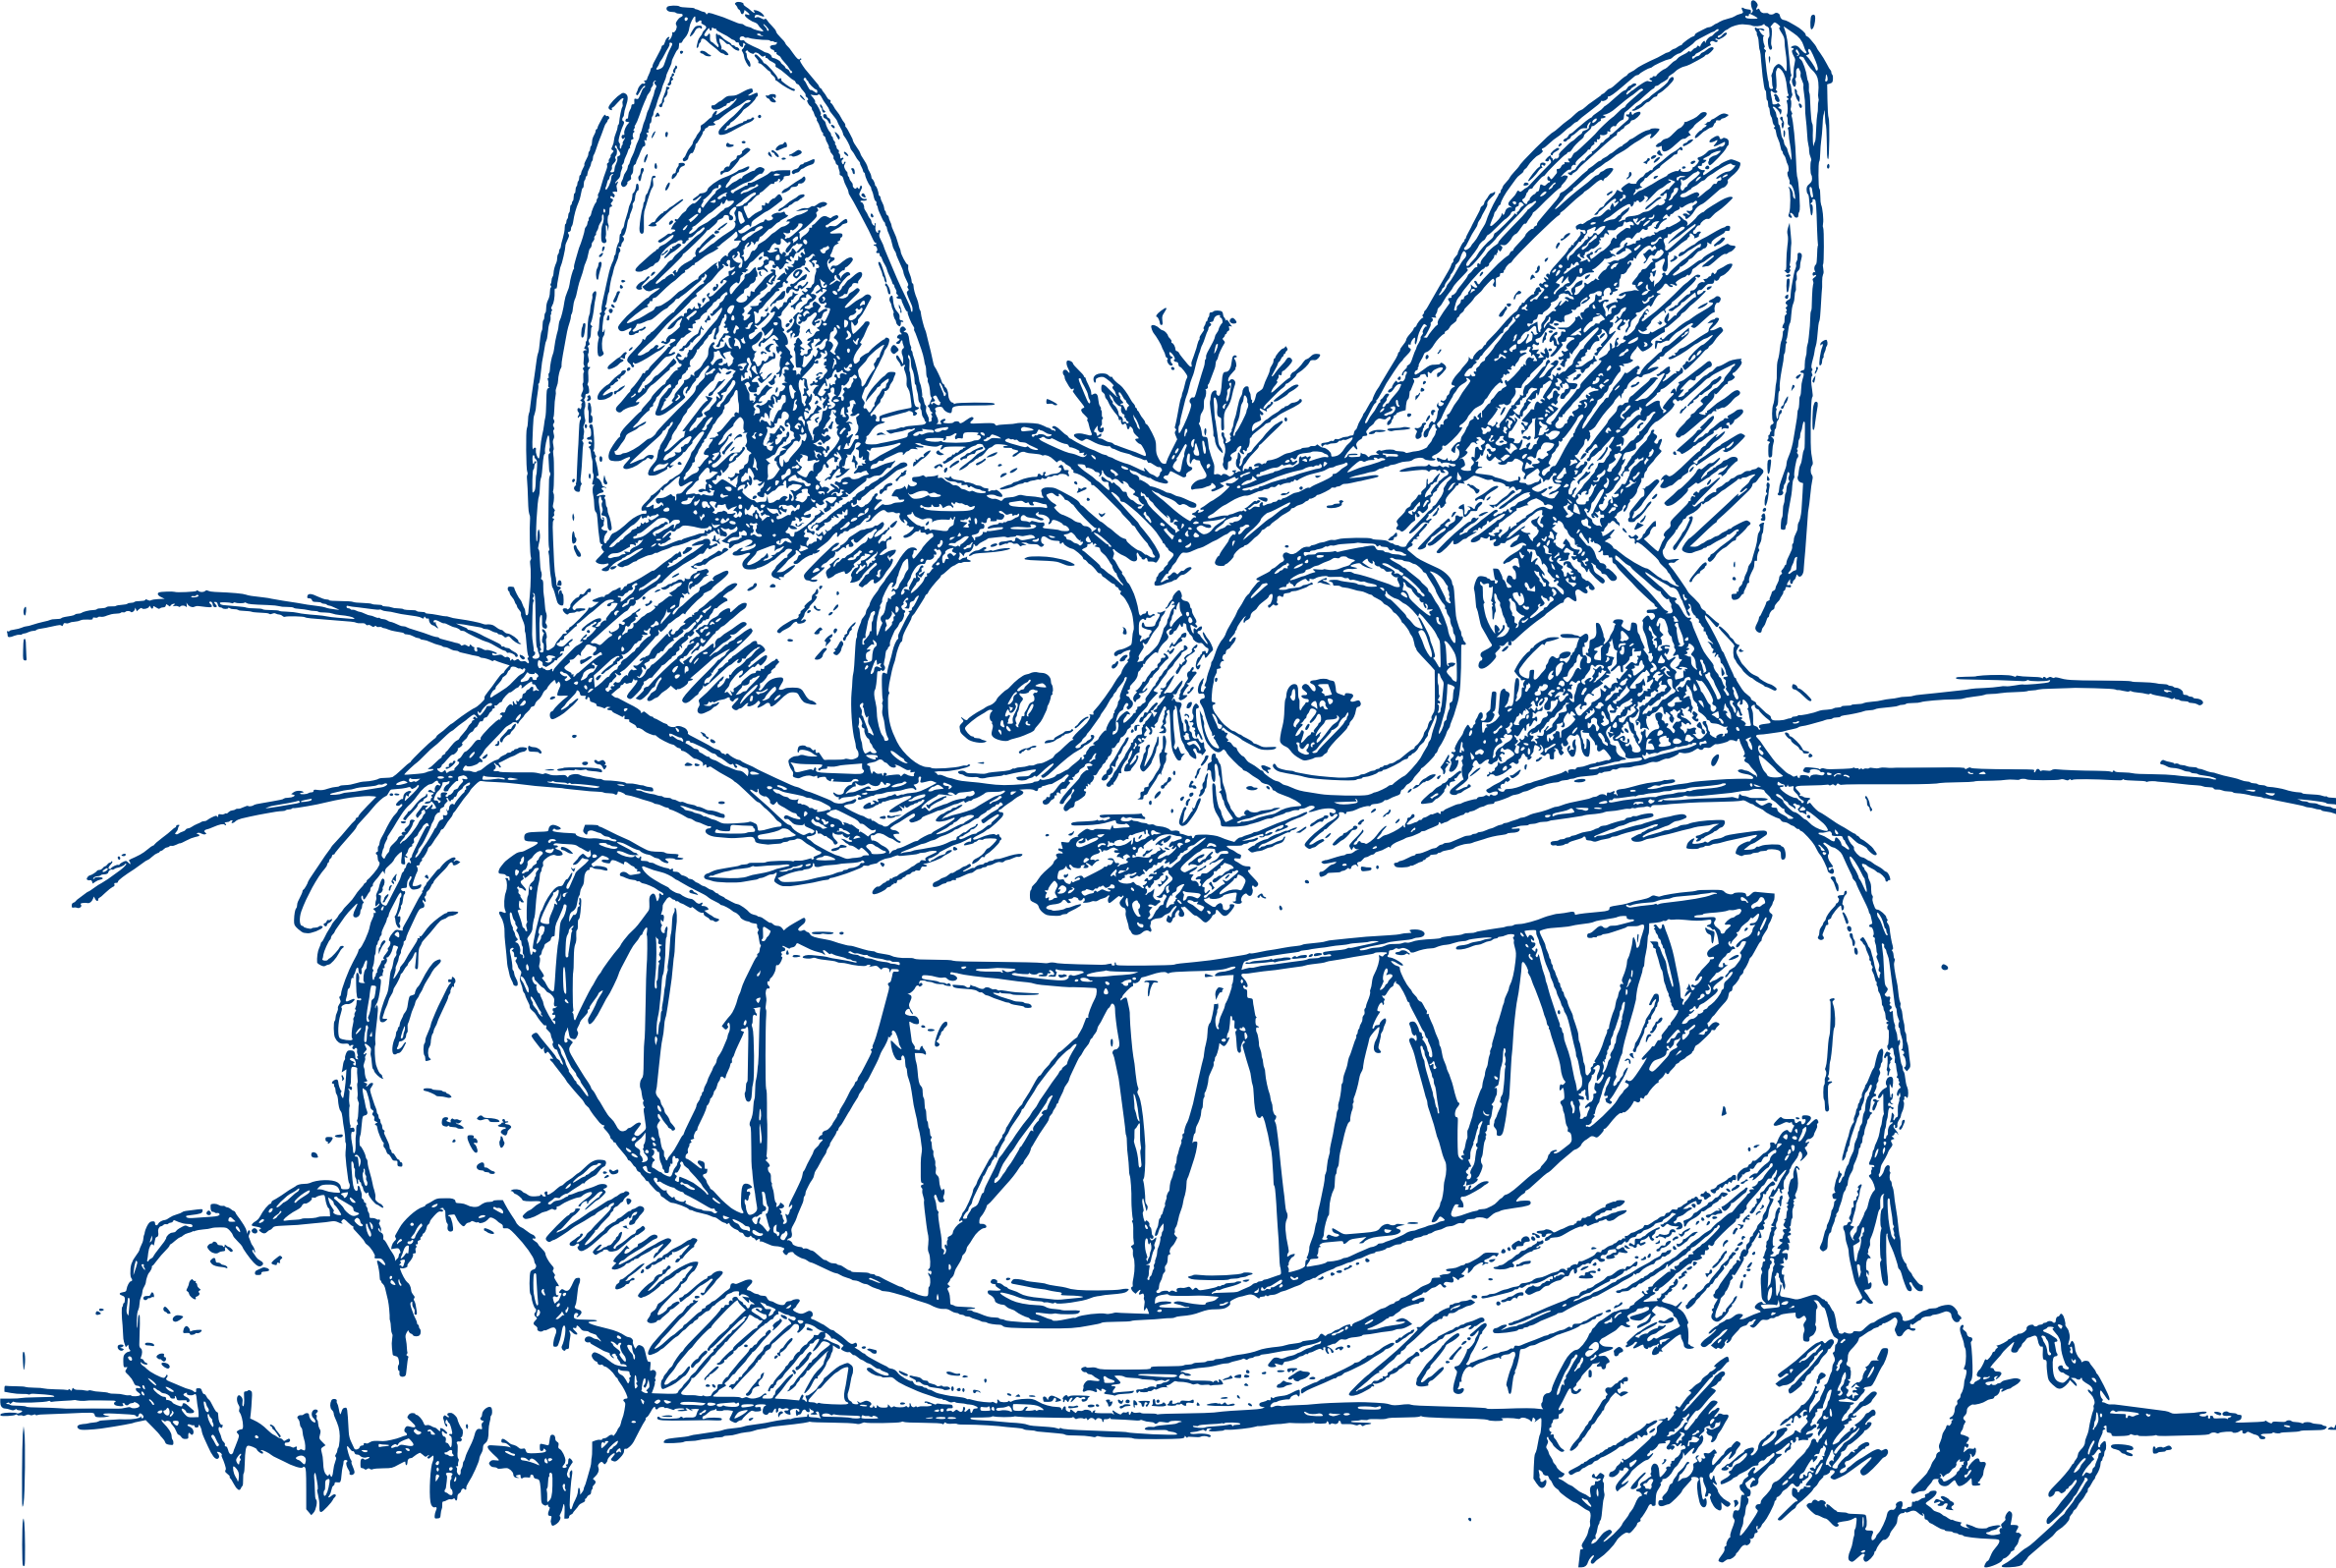 Cool cat black and white clipart banner free download Crazy Cool Cat in Blue Icons PNG - Free PNG and Icons Downloads banner free download